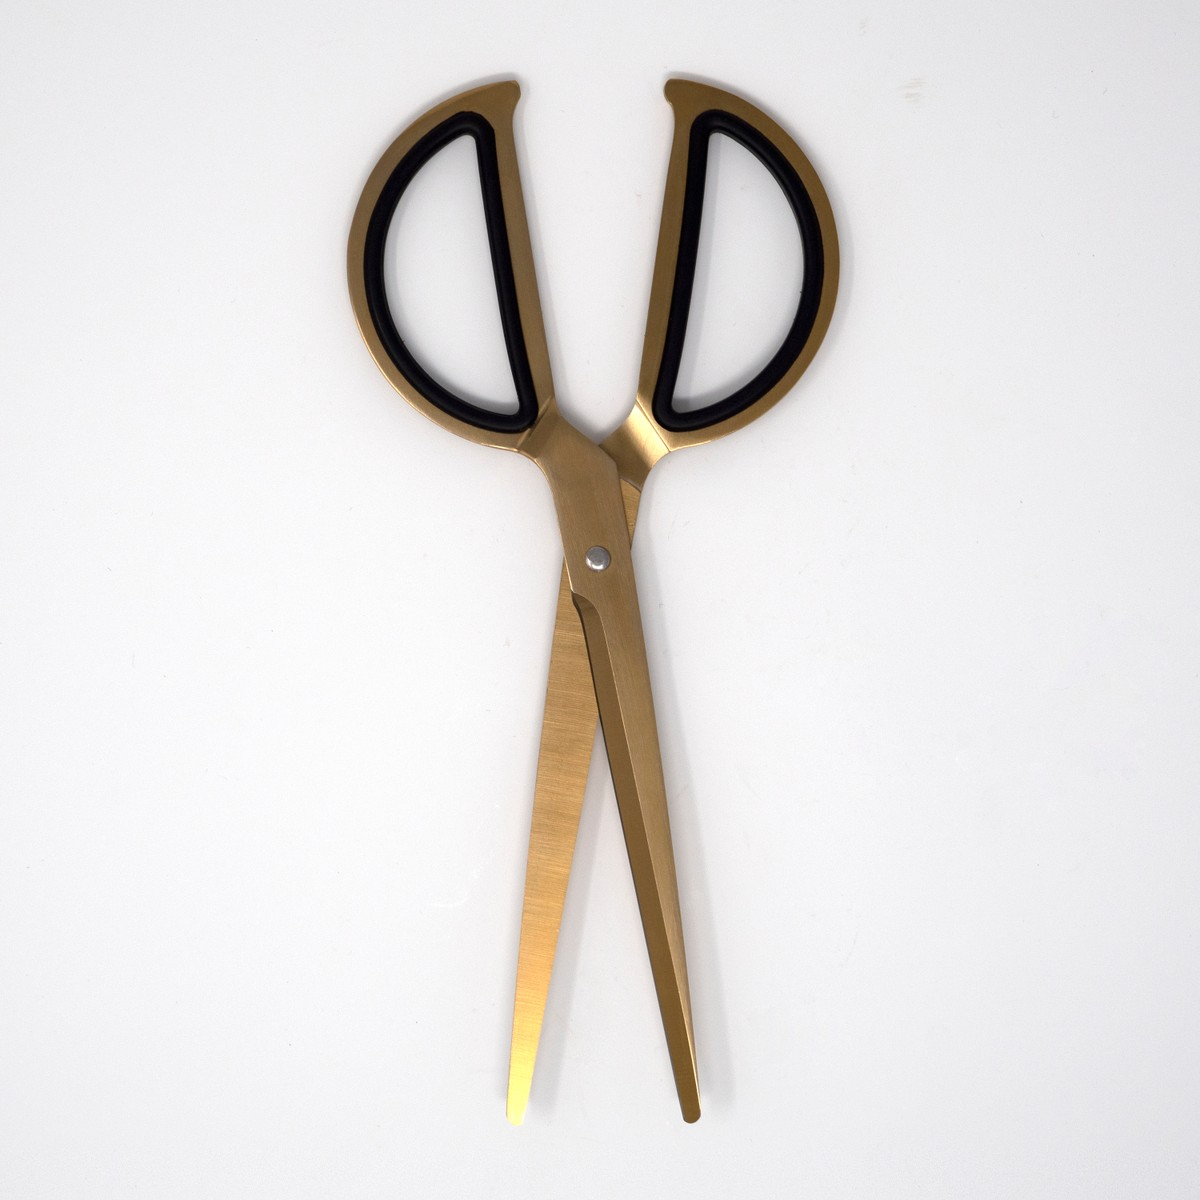 Photo of Stainless Steel Scissors